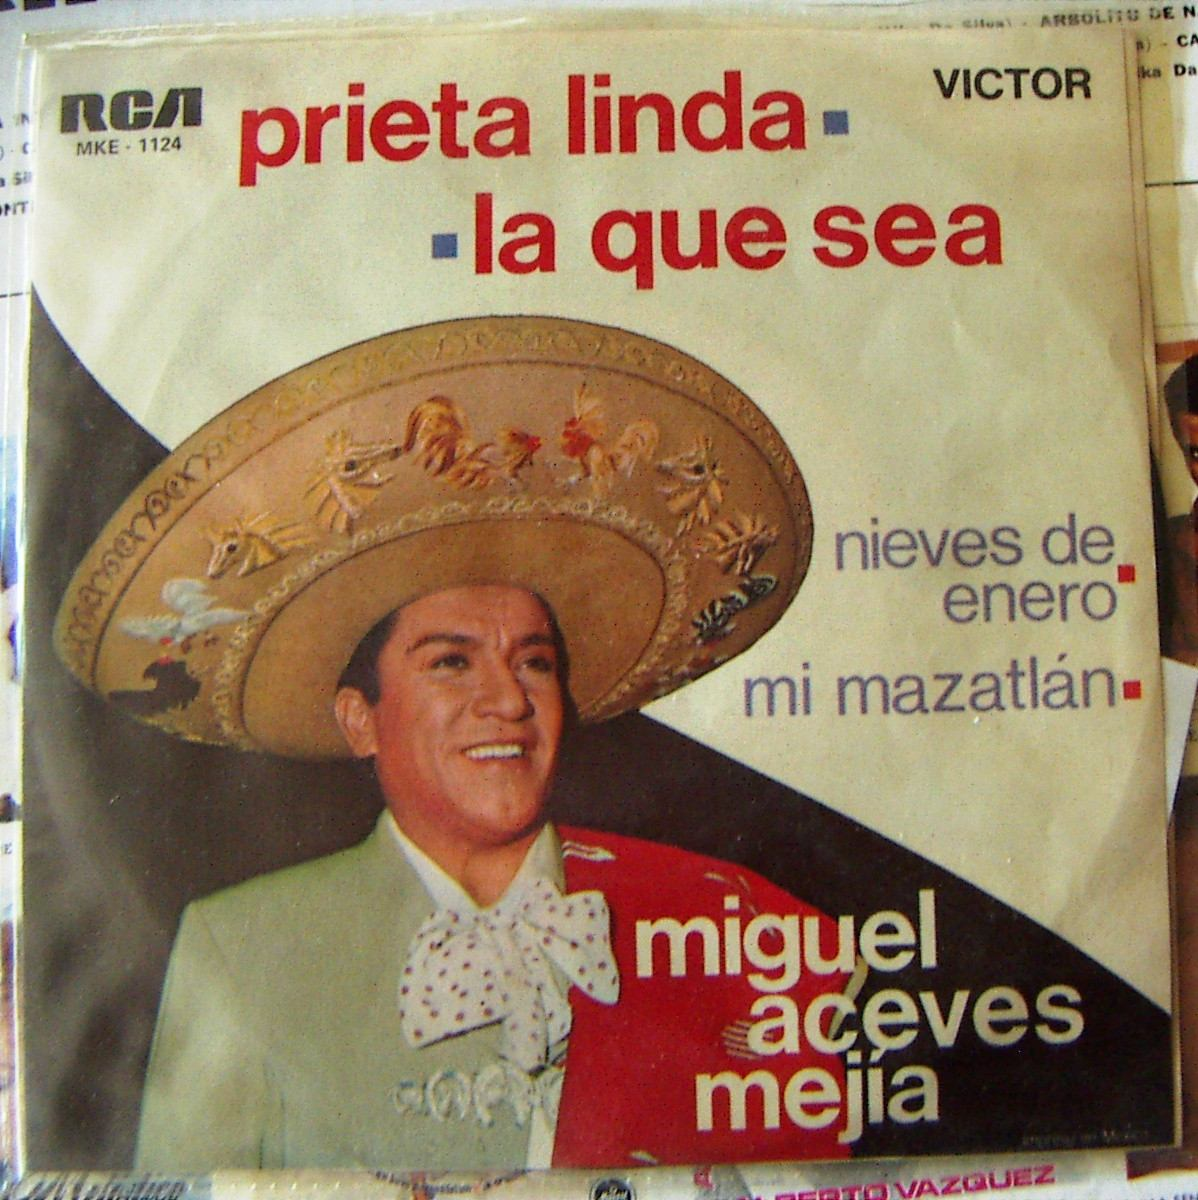 miguel linda Linda let the magic find you linda, leave your fears behind you travel to a place you've never been linda, let your sweet lord guide you open all the doors inside you.